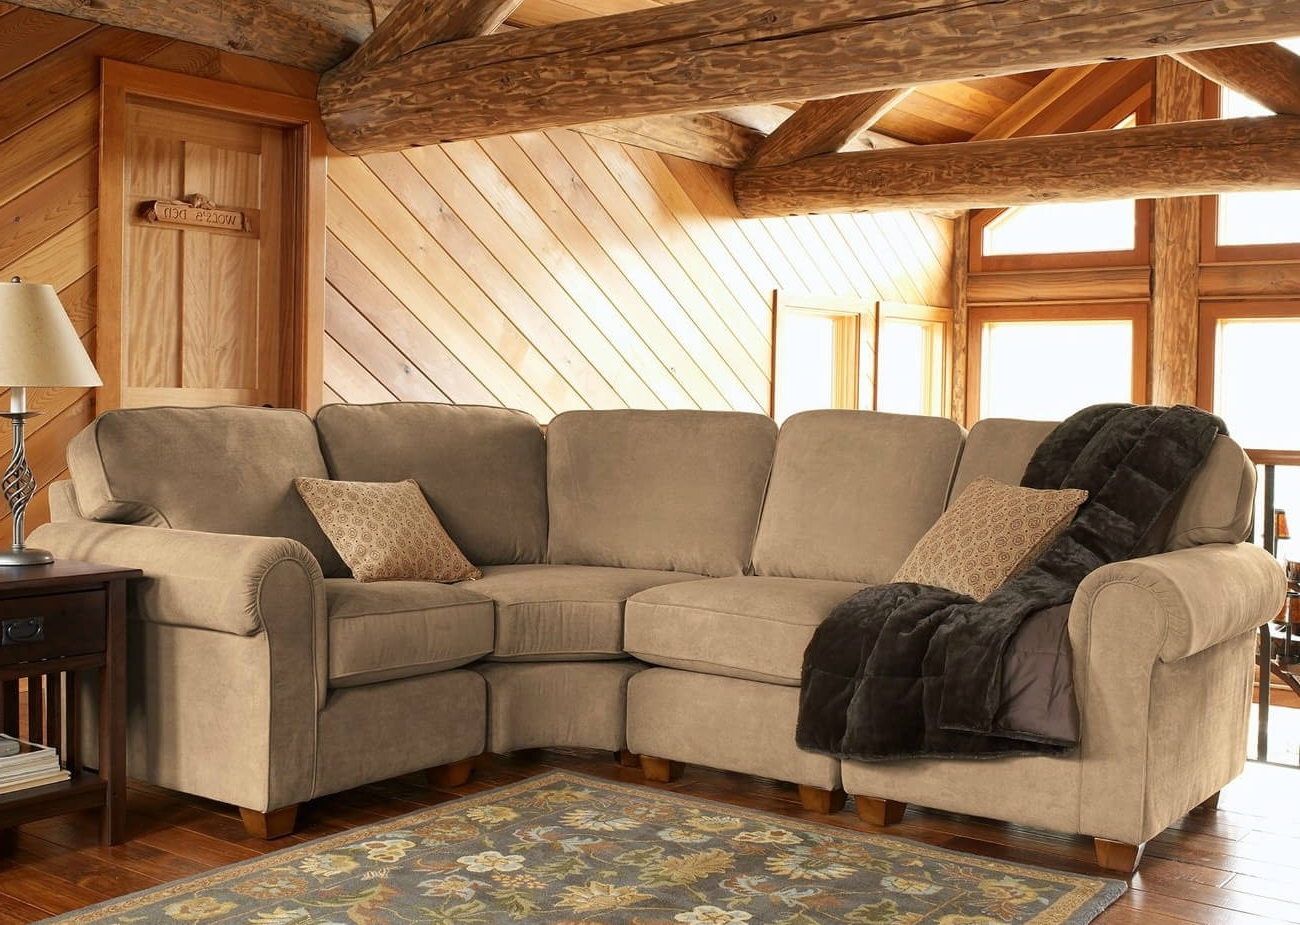 Favorite Sectional Sofas That Can Be Rearranged For 100 Awesome Sectional Sofas Under $1,000 (2018) (View 17 of 20)